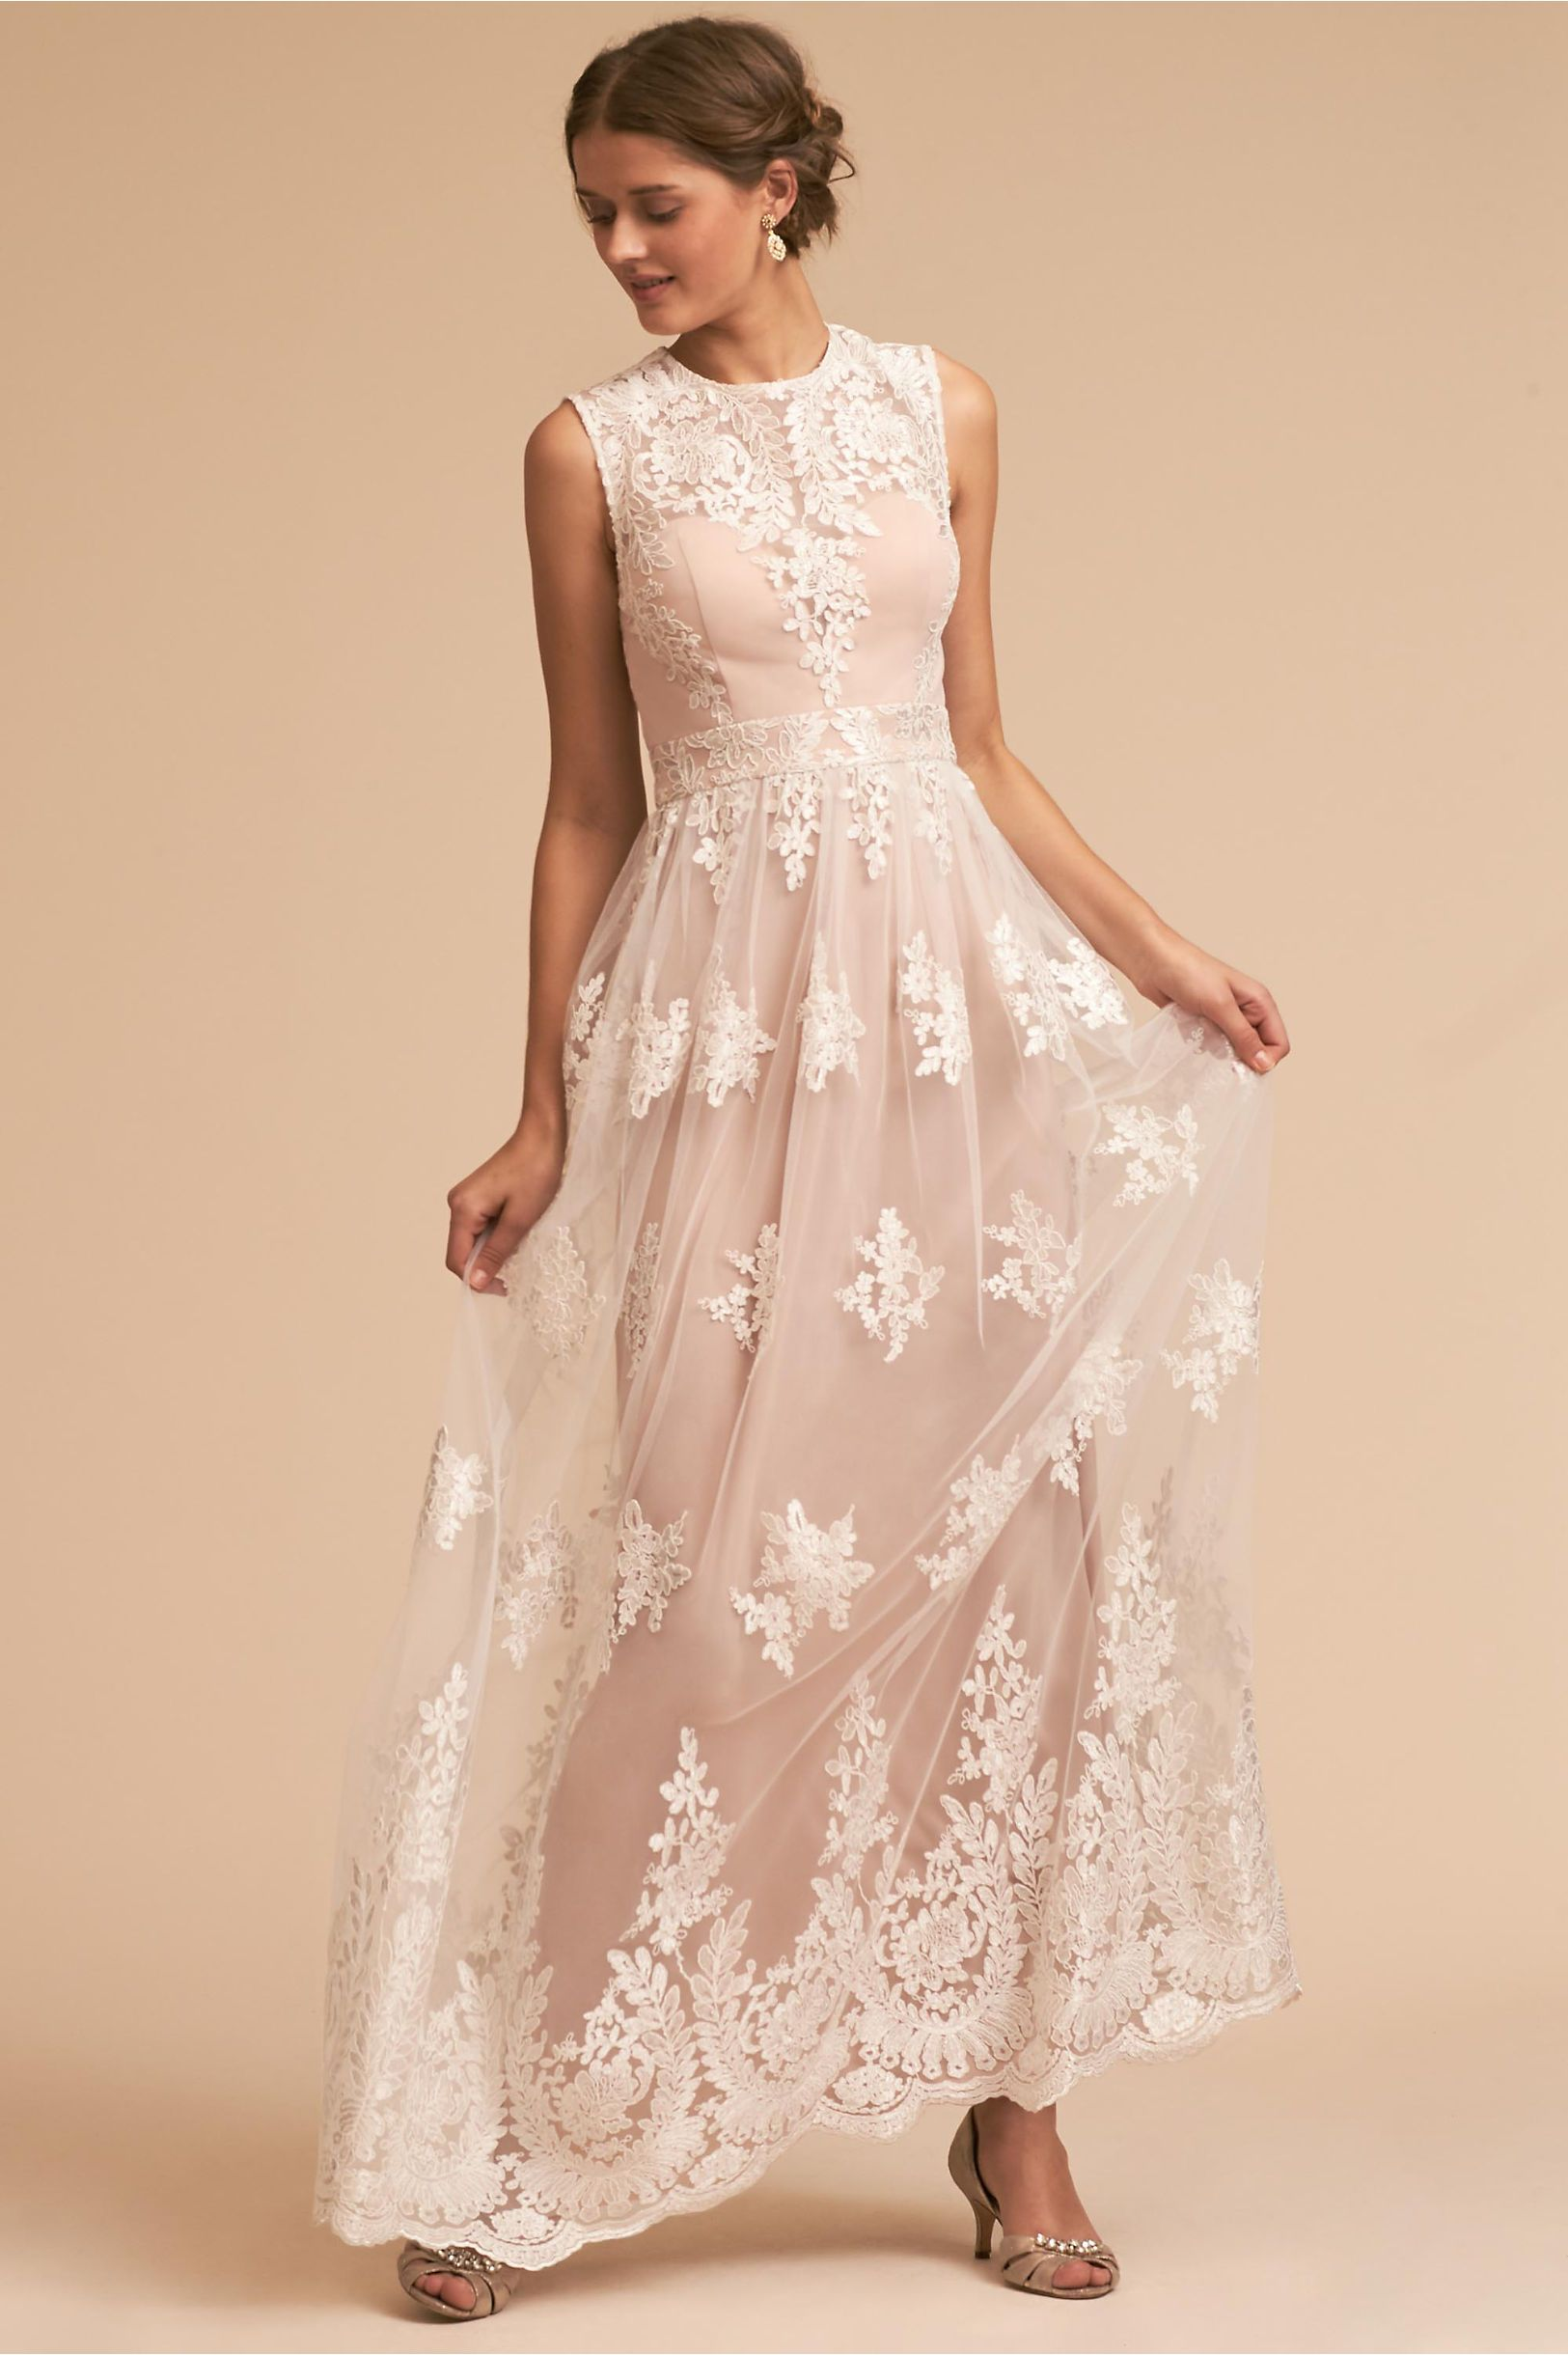 Bhldnus malcolm dress in ivoryblush bridal parties ivory and